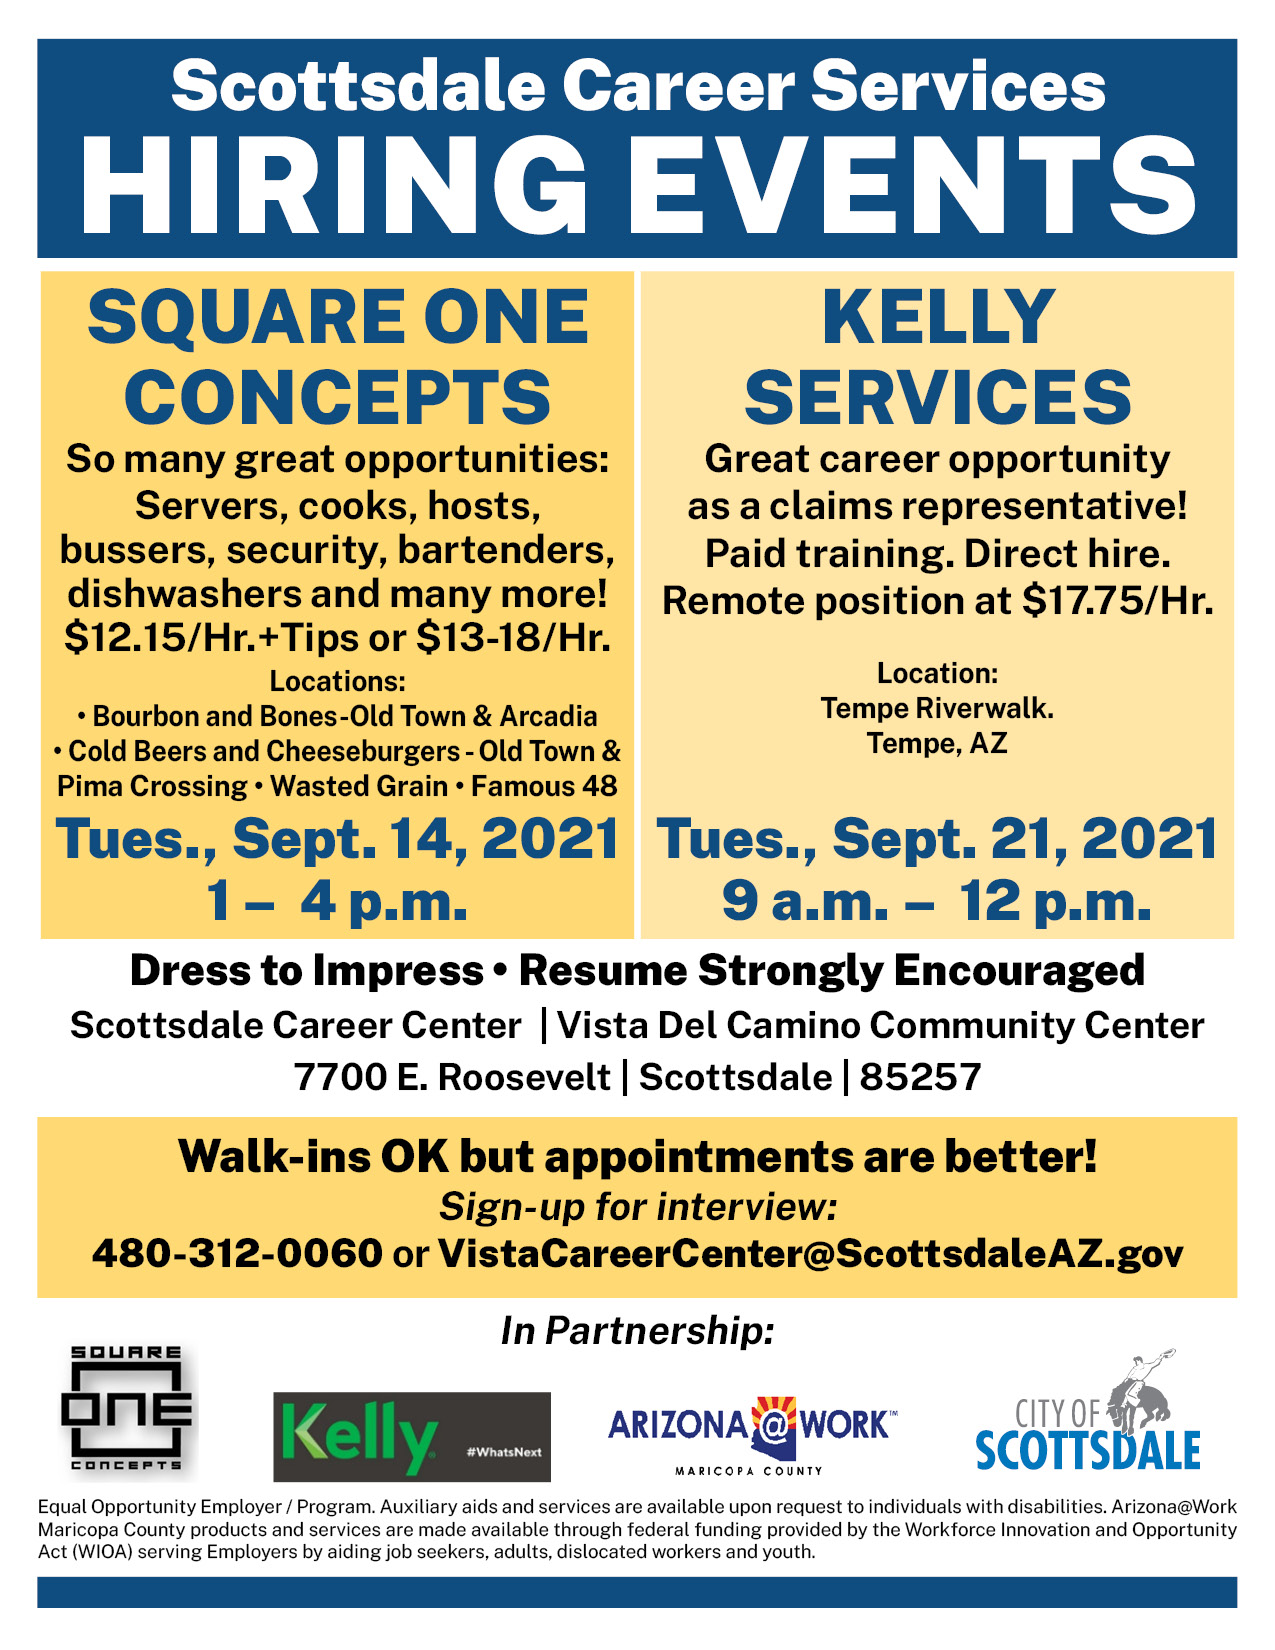 Kelly Services Hiring Event